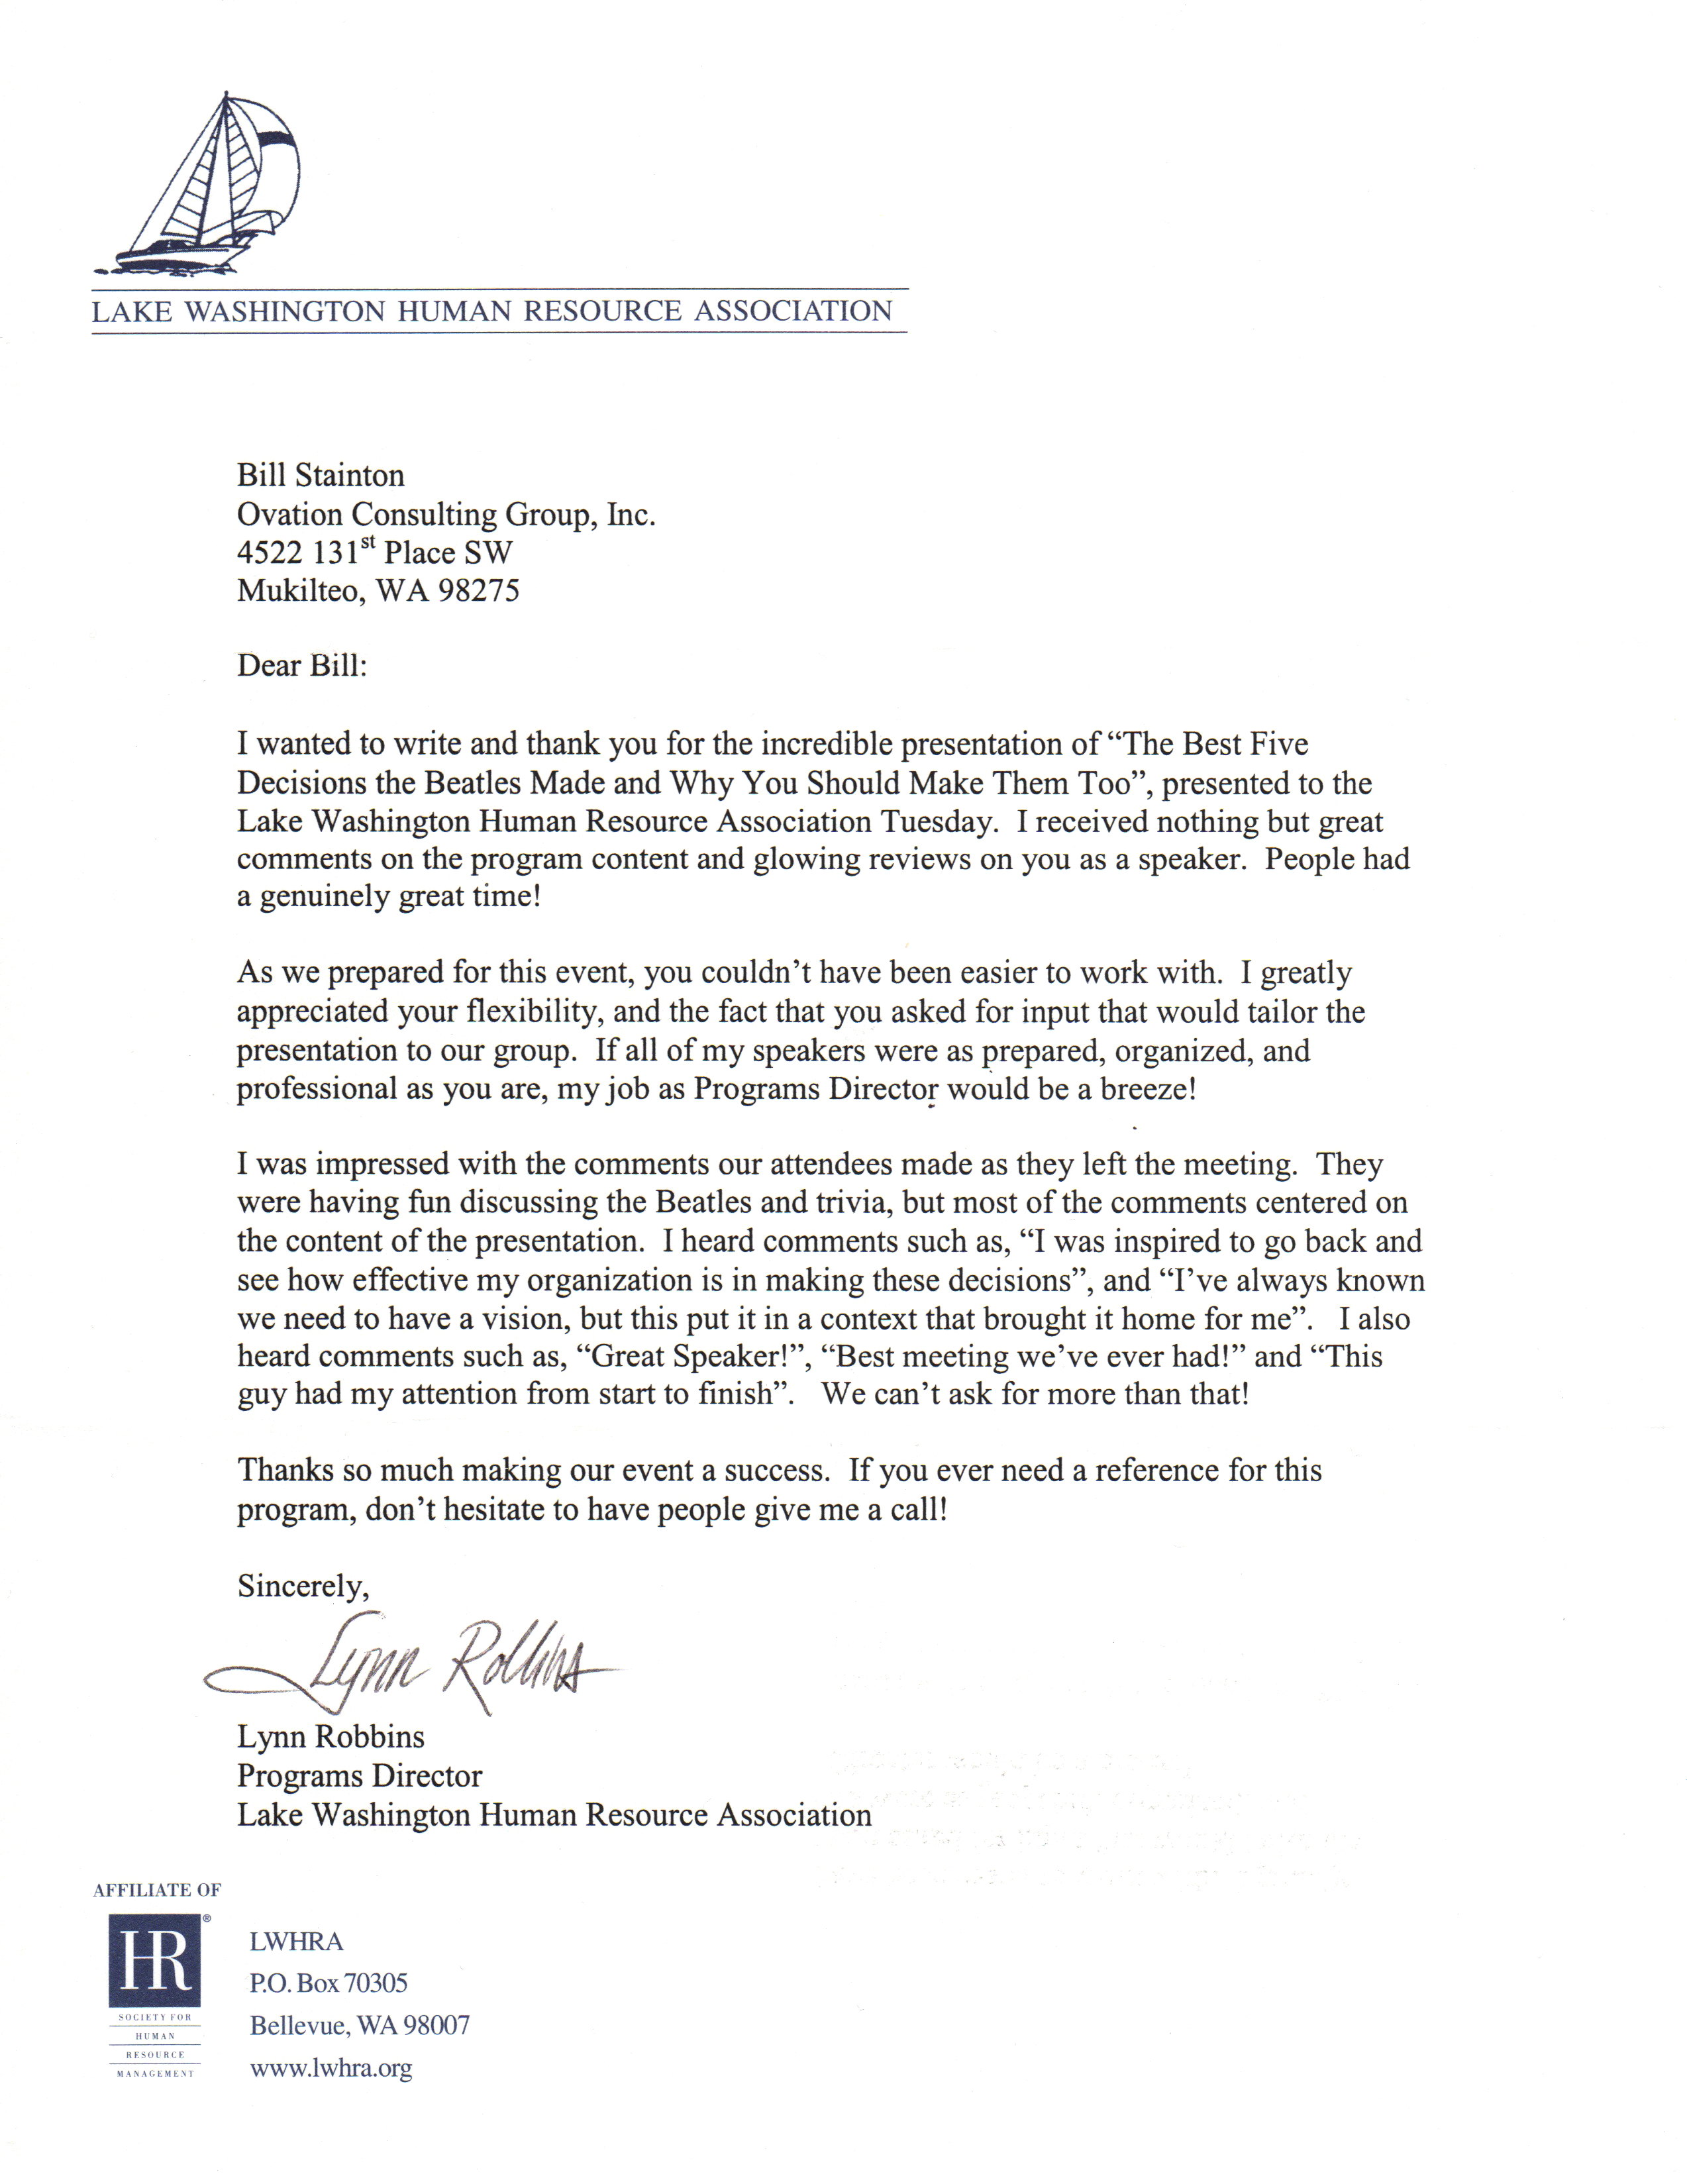 Lk WA Human Resources Testimonial Letter The Executive